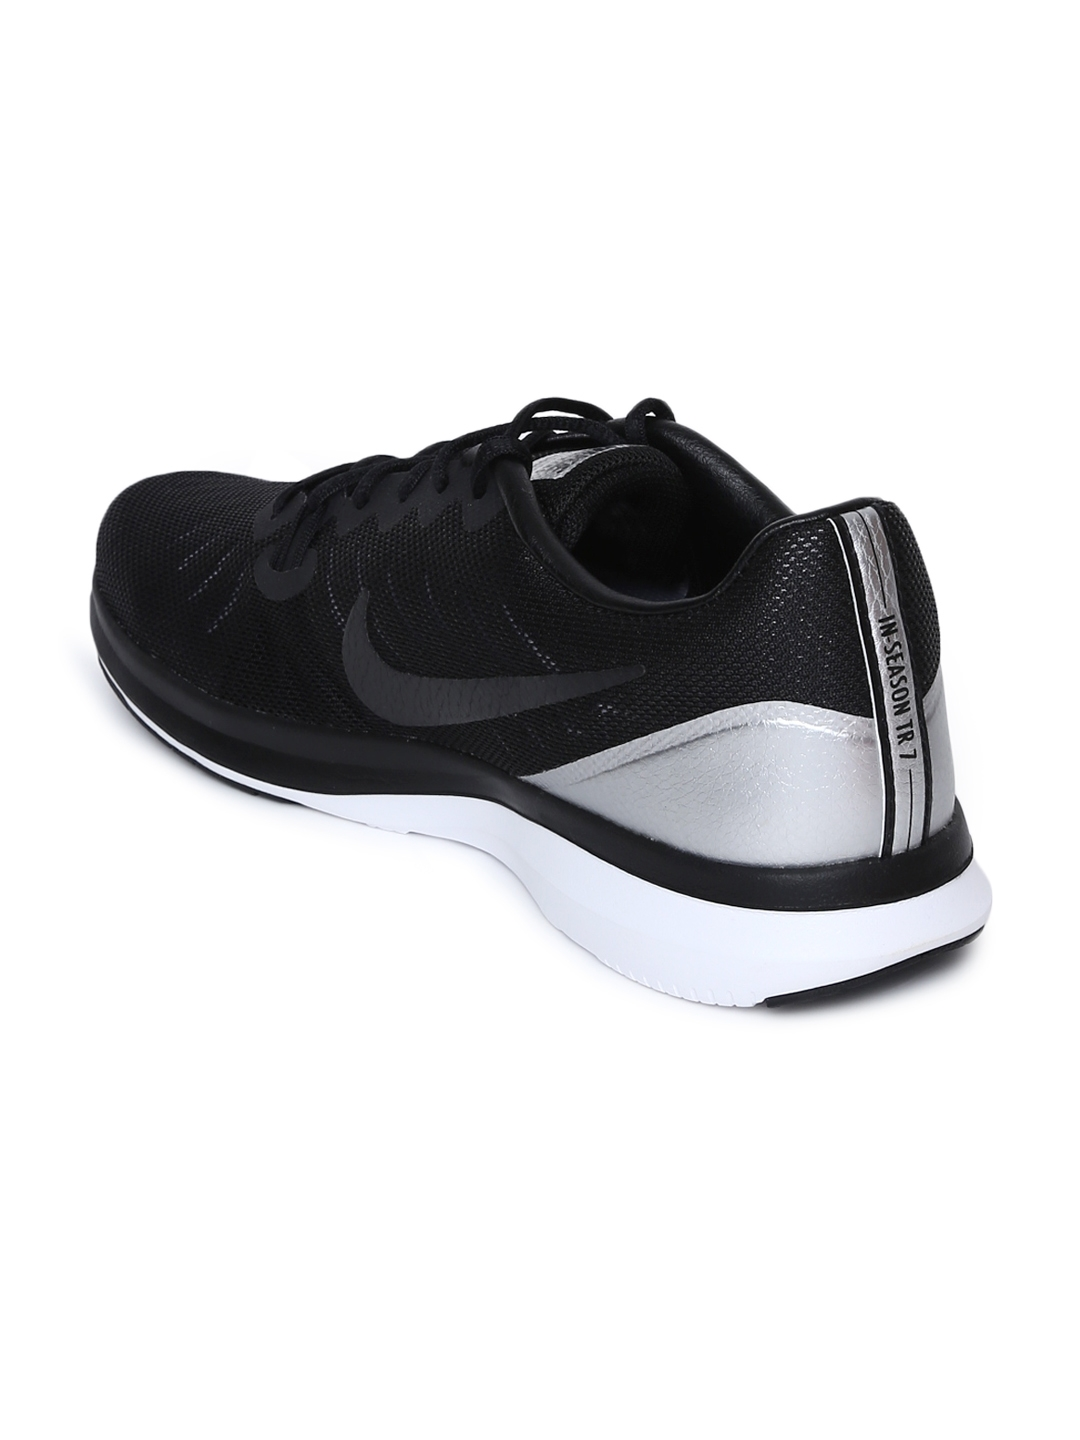 6612af0a23a5 Buy Nike Women Black In Season Tr 7 Prm Training Shoes - Sports ...